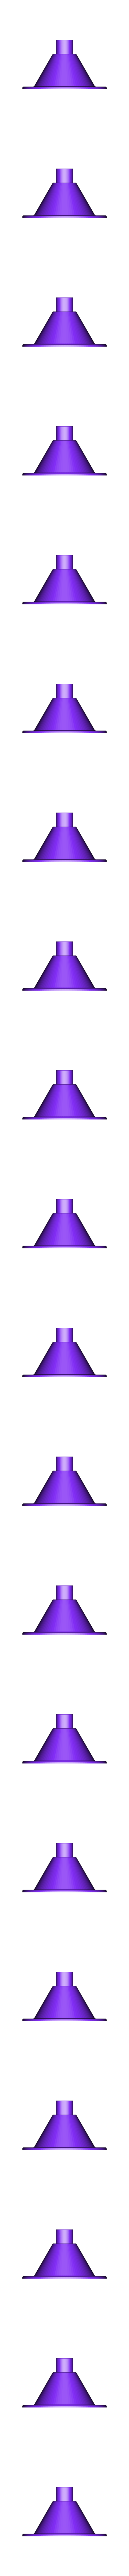 Hat_stand_-_part_2.stl Download free STL file Hat stand • 3D print object, Harry_D60